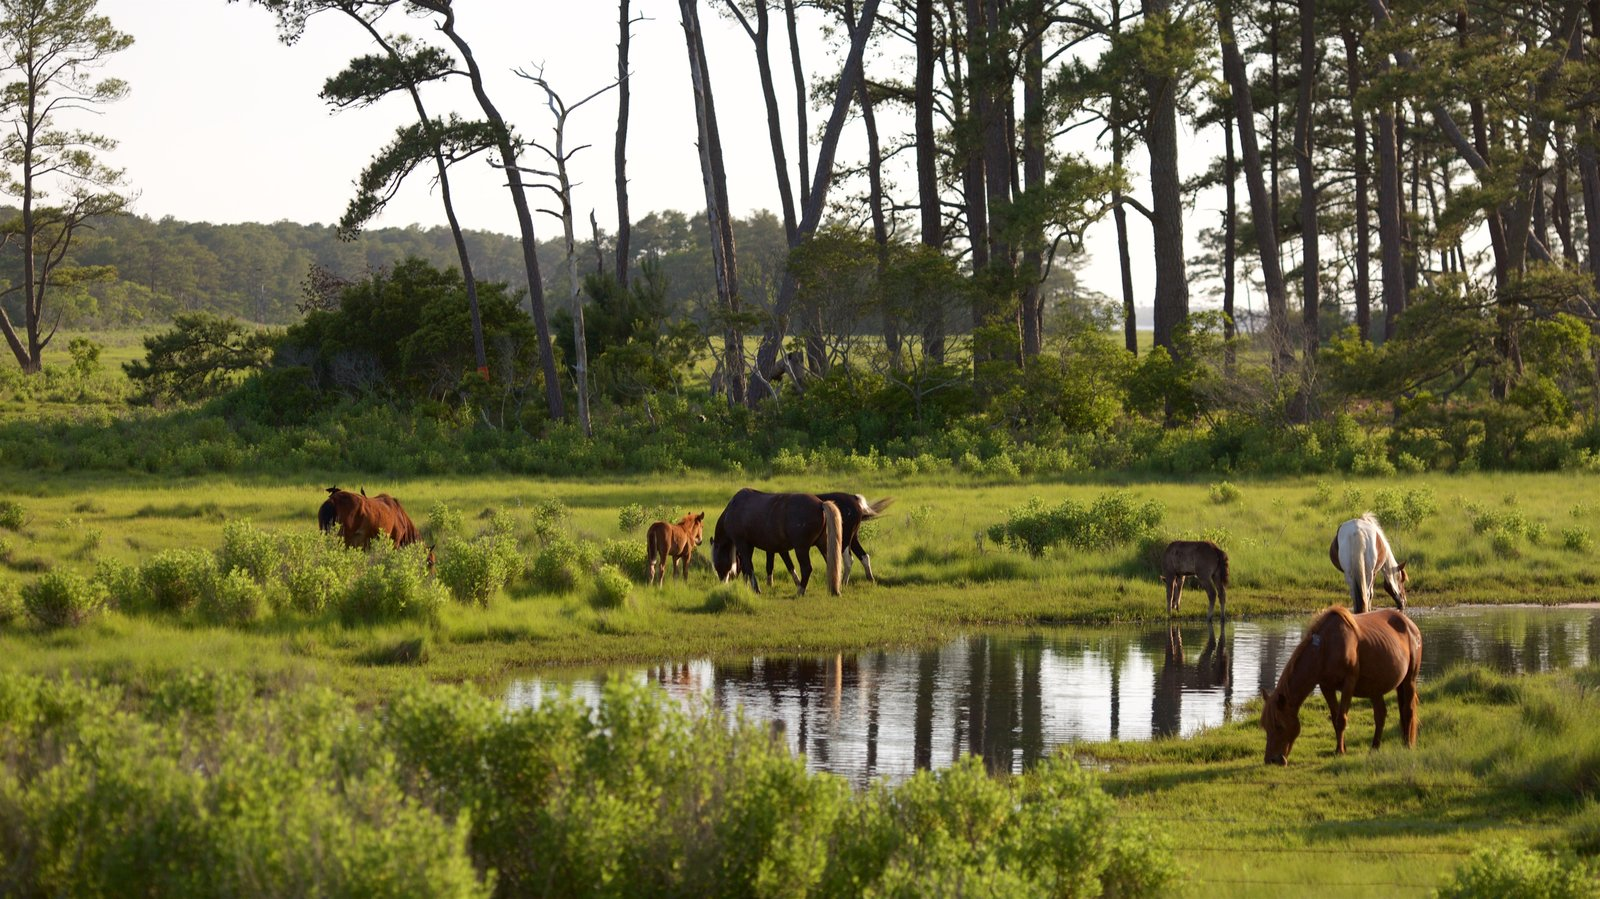 Assateague Island National Seashore which includes farmland, tranquil scenes and a pond